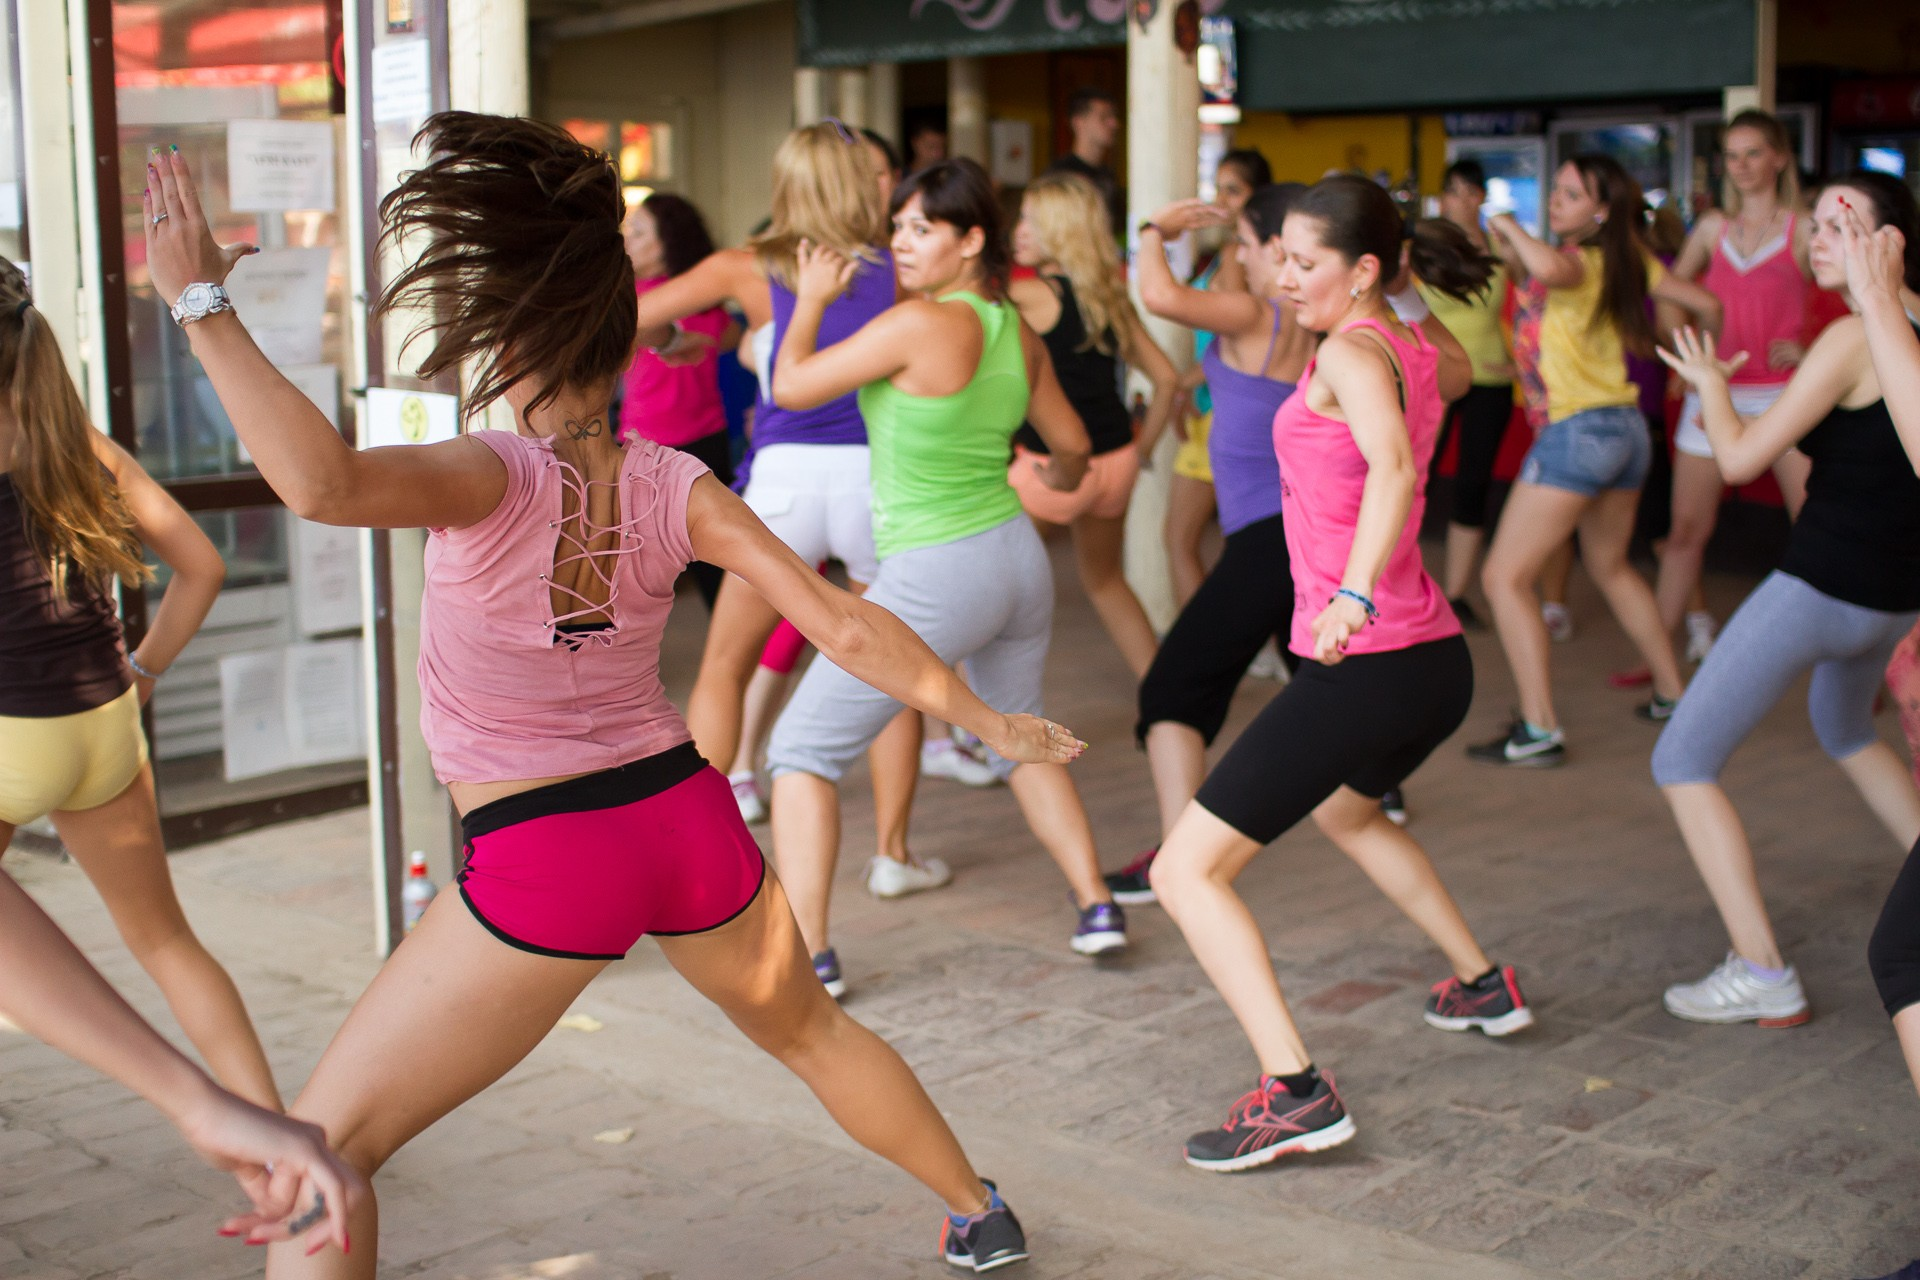 Zumba fitness AfriKafe video